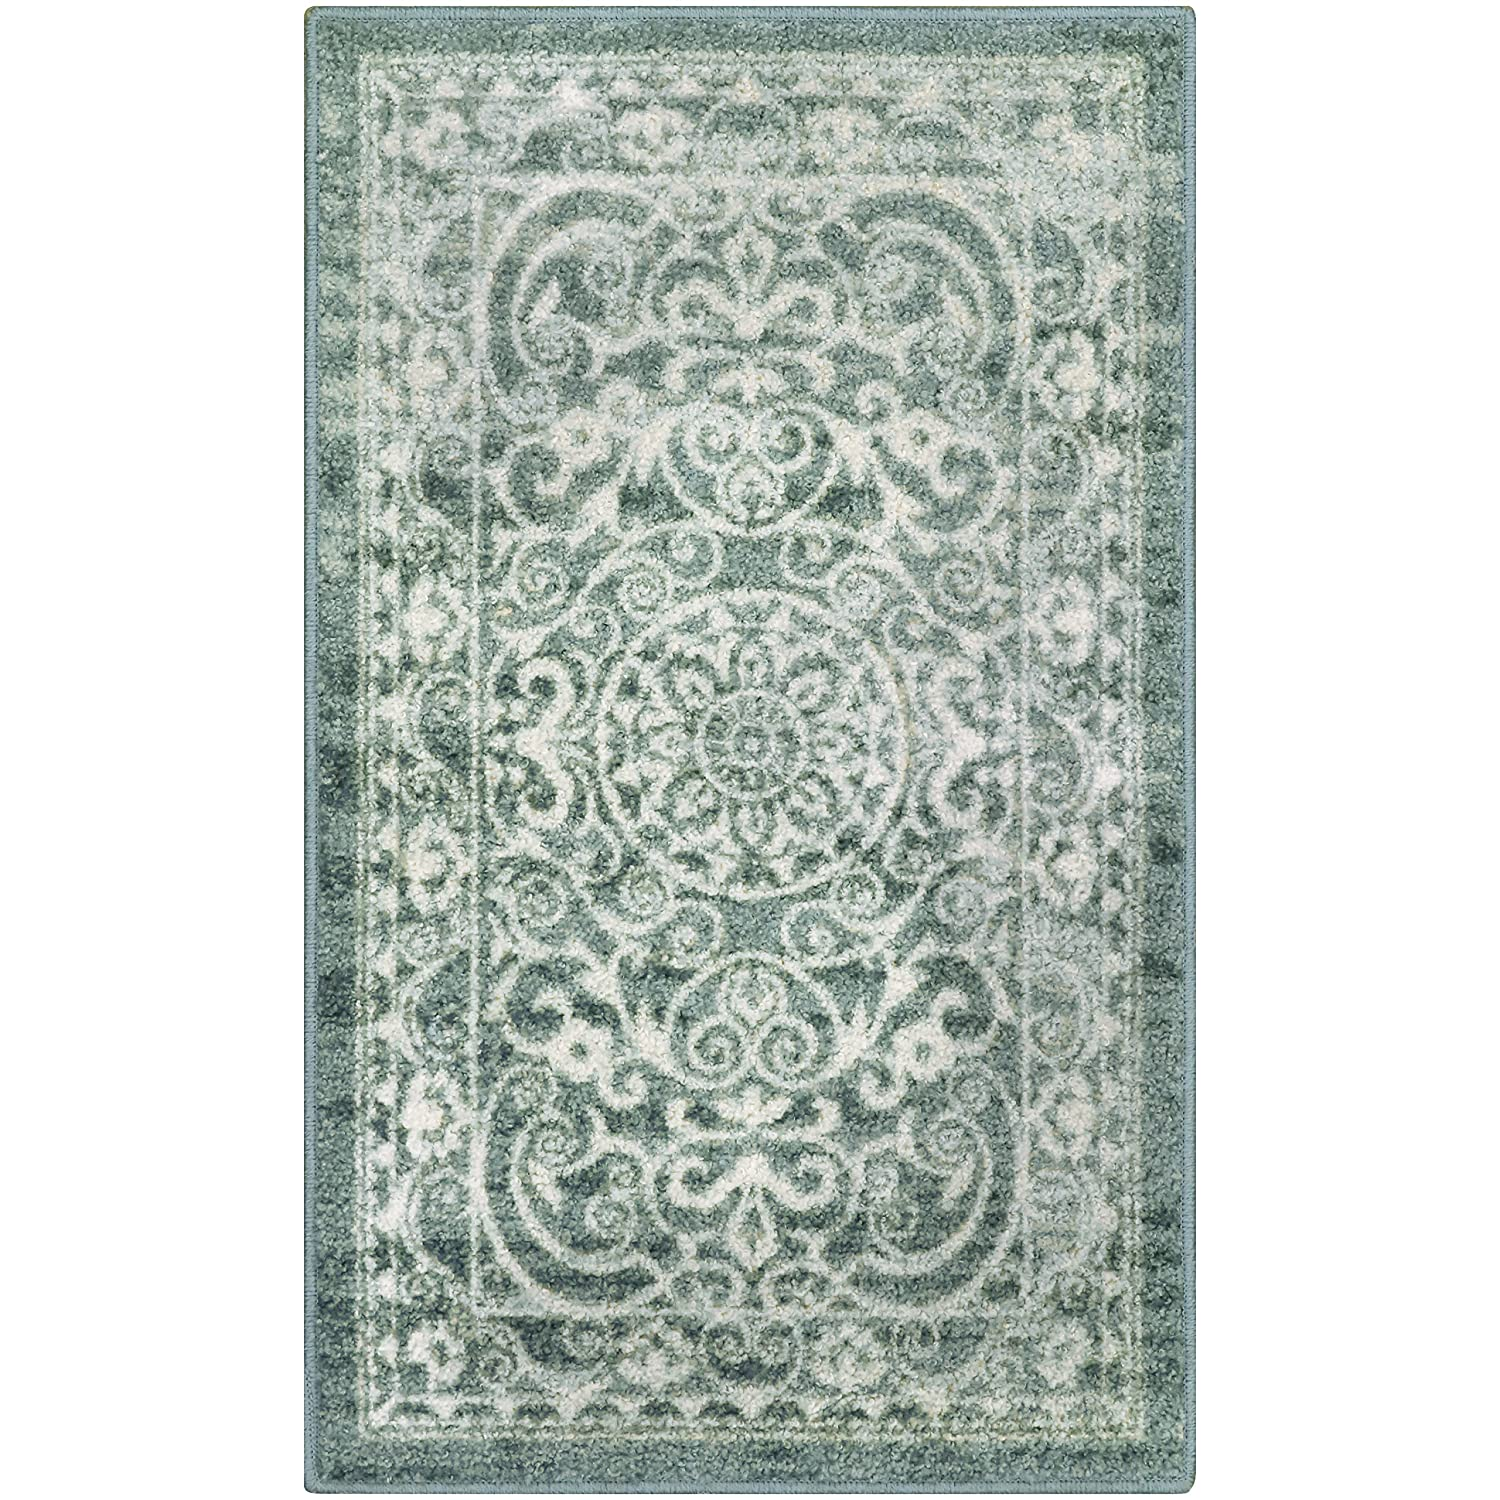 Kitchen Rugs, Maples Rugs [Made in USA][Pelham] 1'8 x 2'10 Non Slip Padded Small Area Rugs for Living Room, Bedroom, and Entryway - Khaki AG4055301